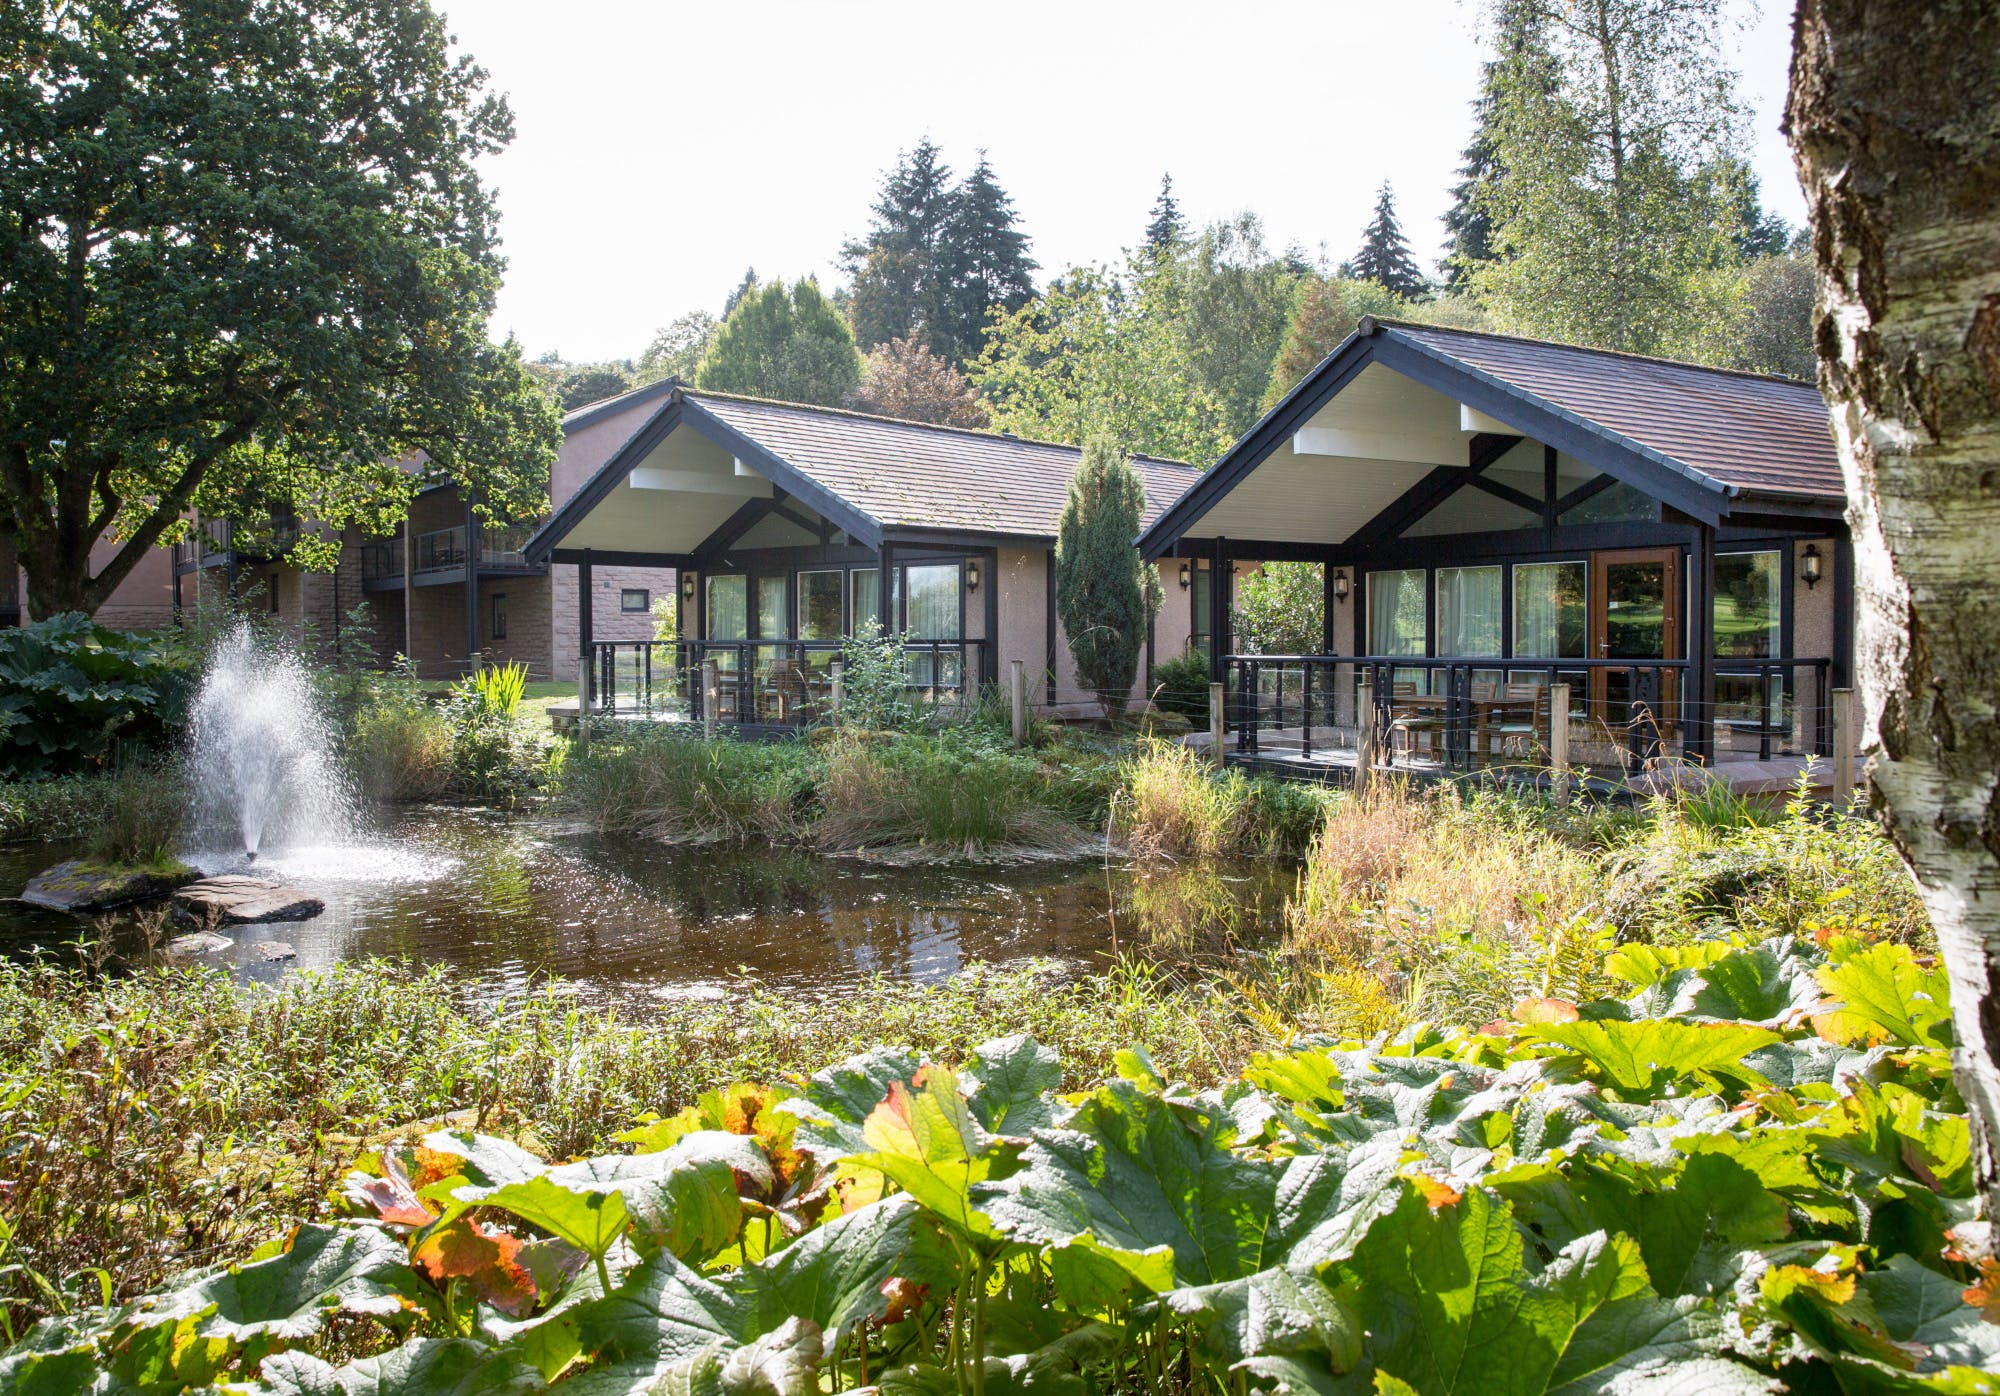 Cameron House lodges around the pond